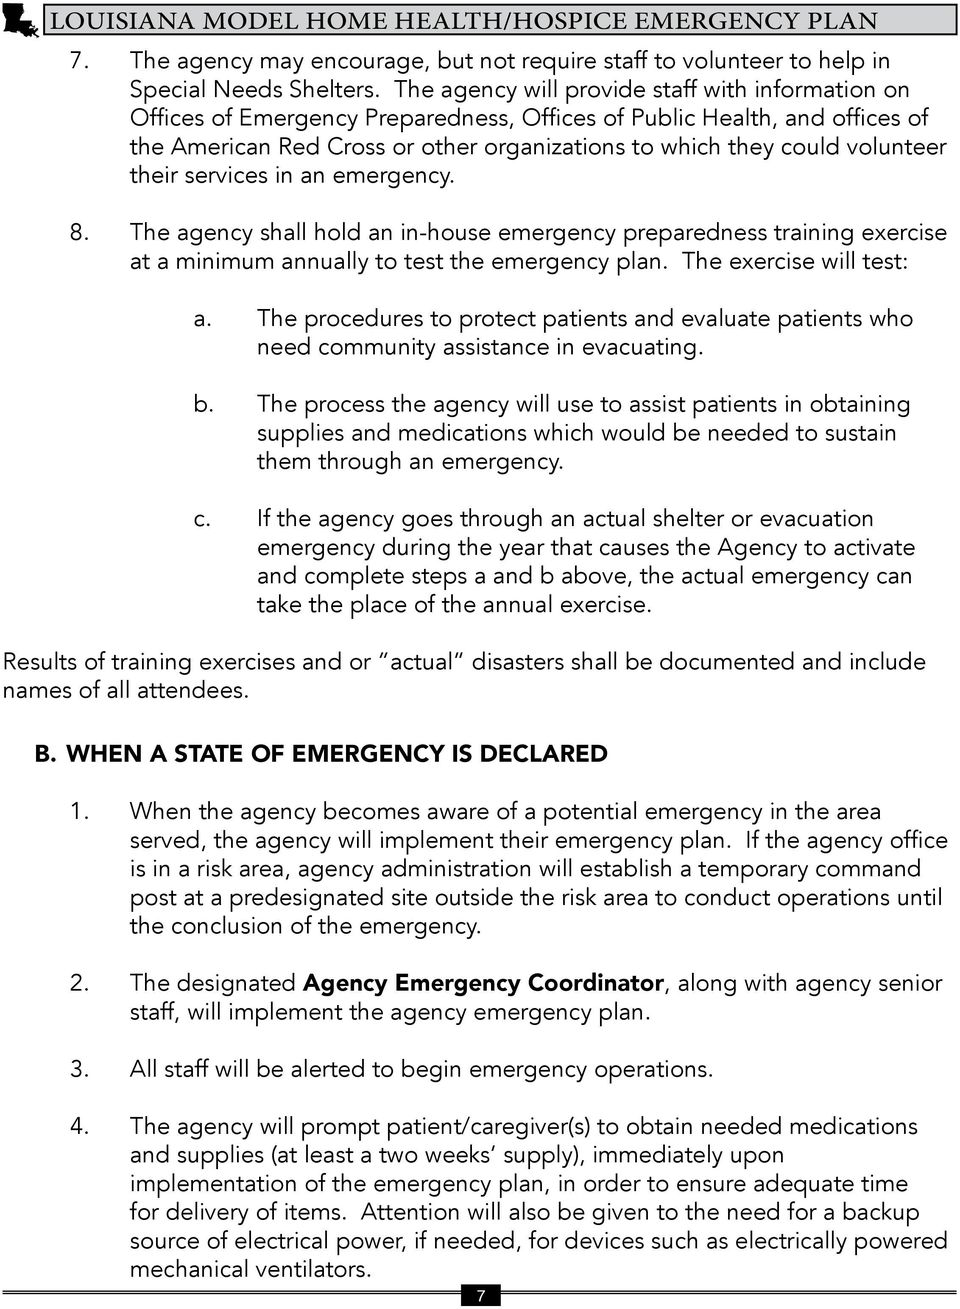 volunteer their services in an emergency. 8. The agency shall hold an in-house emergency preparedness training exercise at a minimum annually to test the emergency plan. The exercise will test: a.